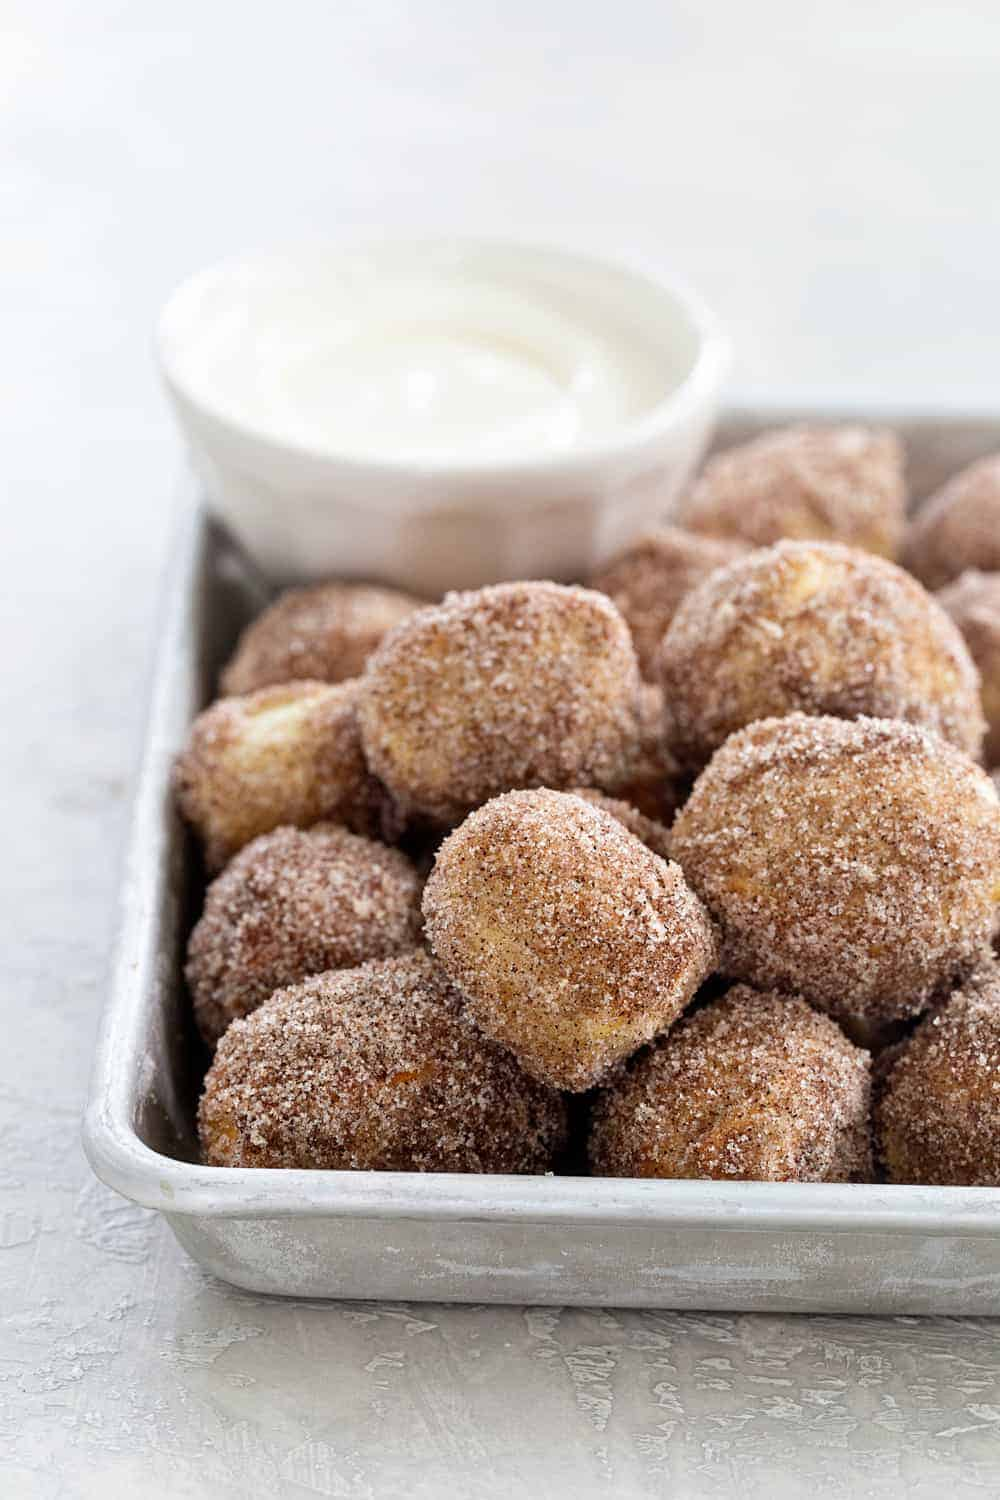 Cinnamon Sugar Soft Pretzel Bites are super simple to make. Serve them up with a side of cream cheese icing for the ultimate game day snack! So fun!